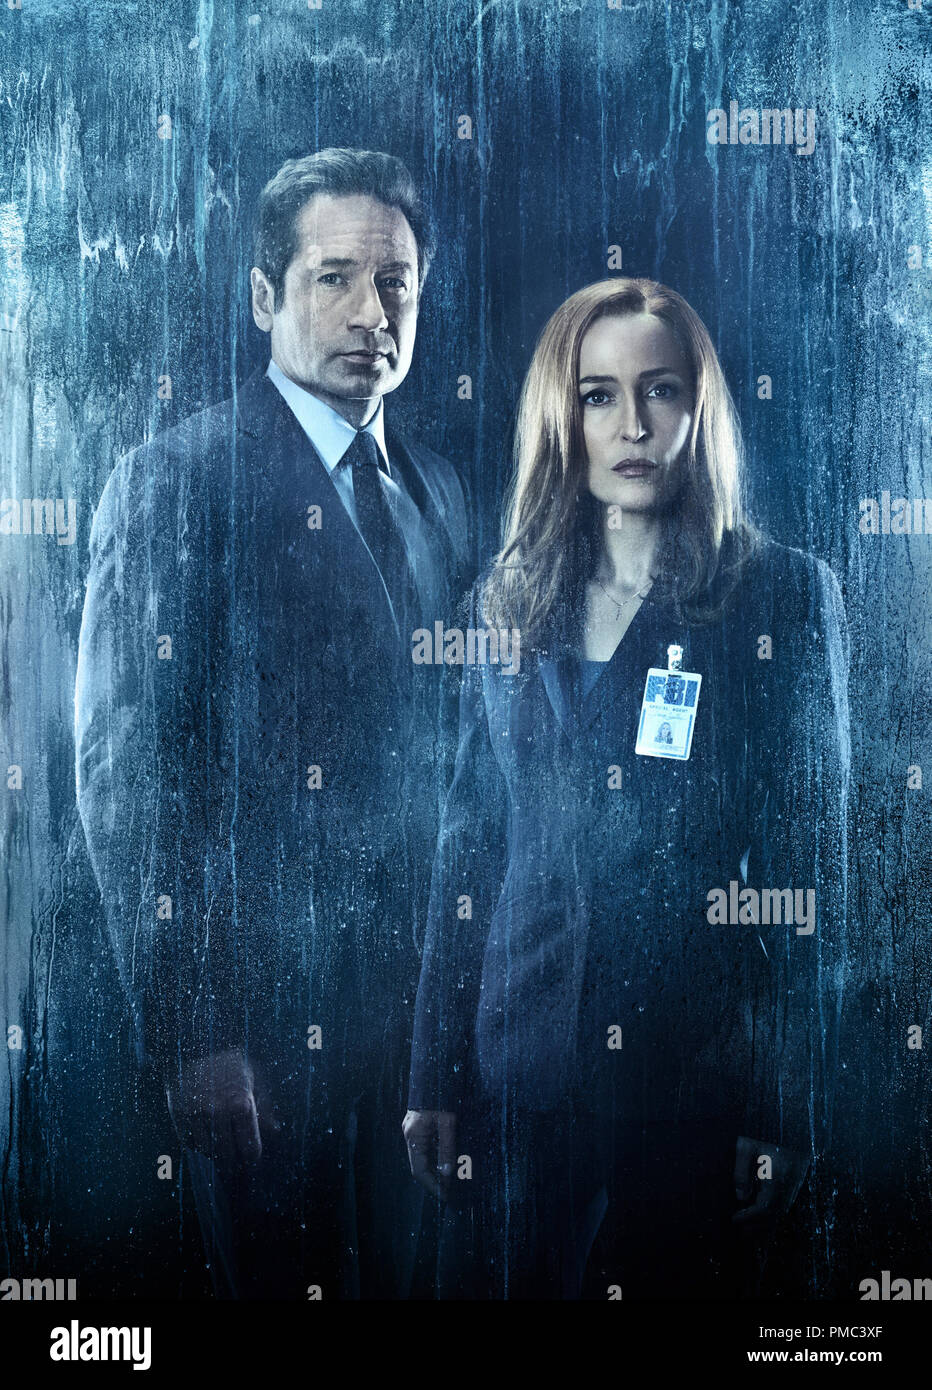 THE X-FILES:  L-R:  David Duchovny and Gillian Anderson in THE X-FILES  on Fox. - Stock Image